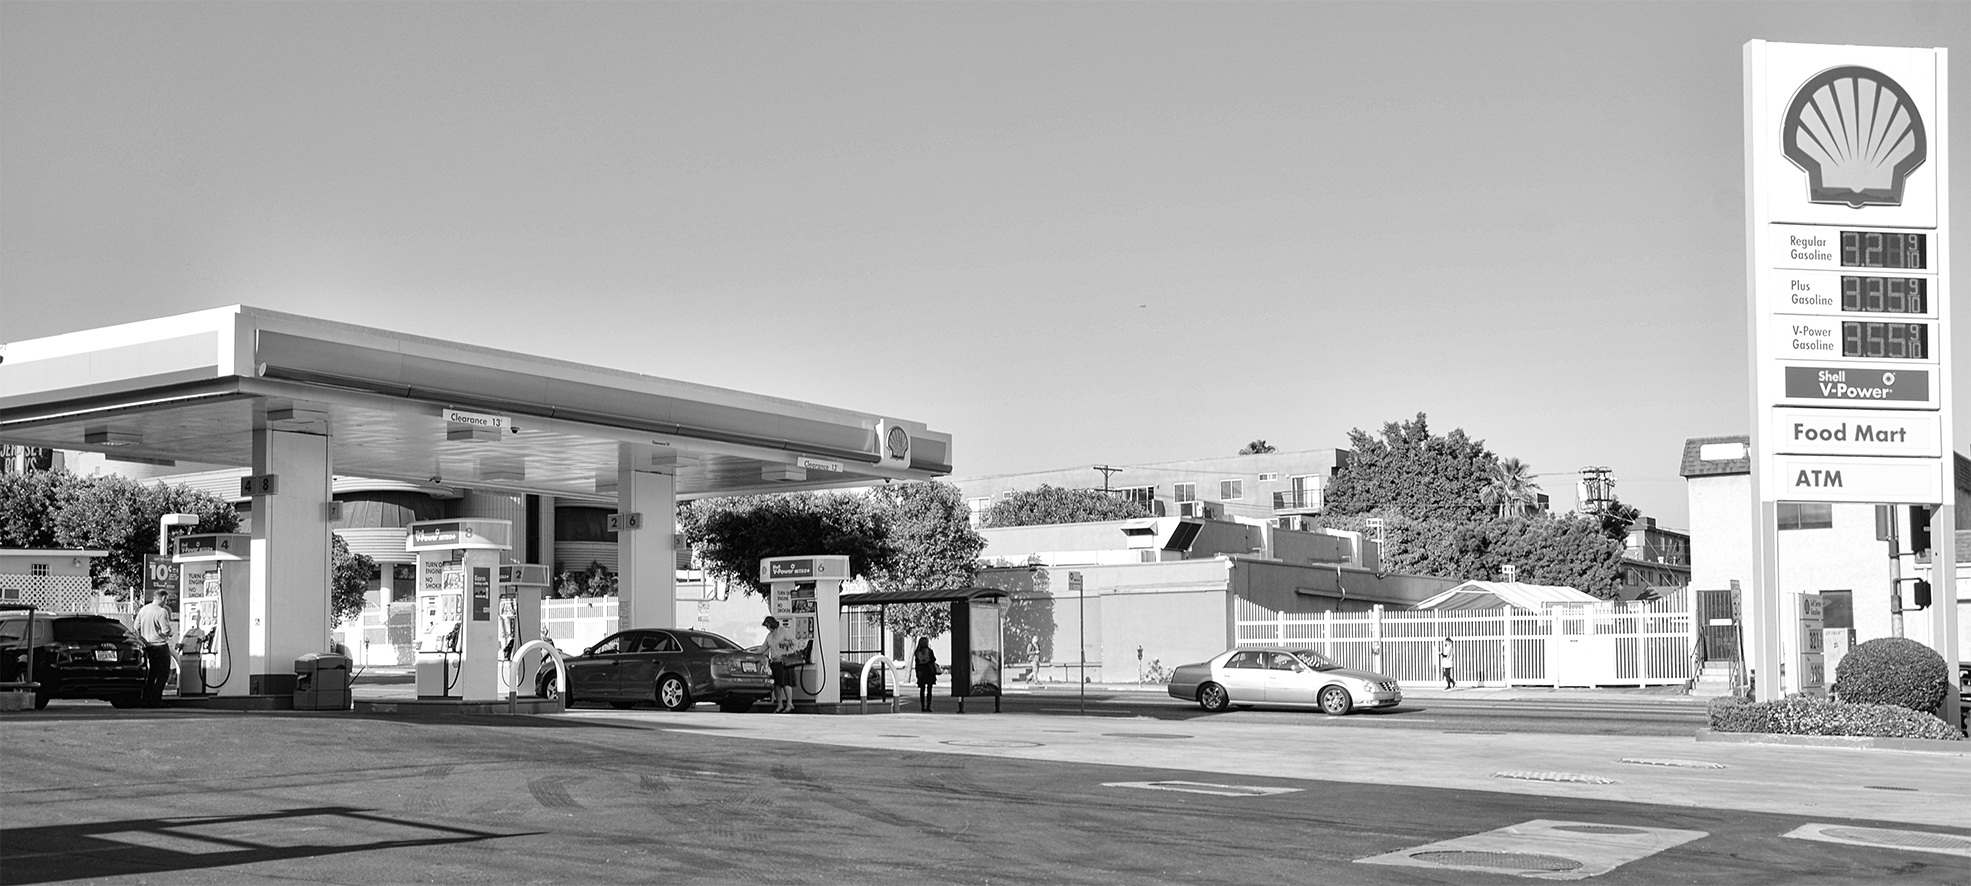 11_Last-seen-at-Shell-Gas-Station,-N-La-Brea-Ave.-Fountain-Ave.,-West-Hollywood,-LA